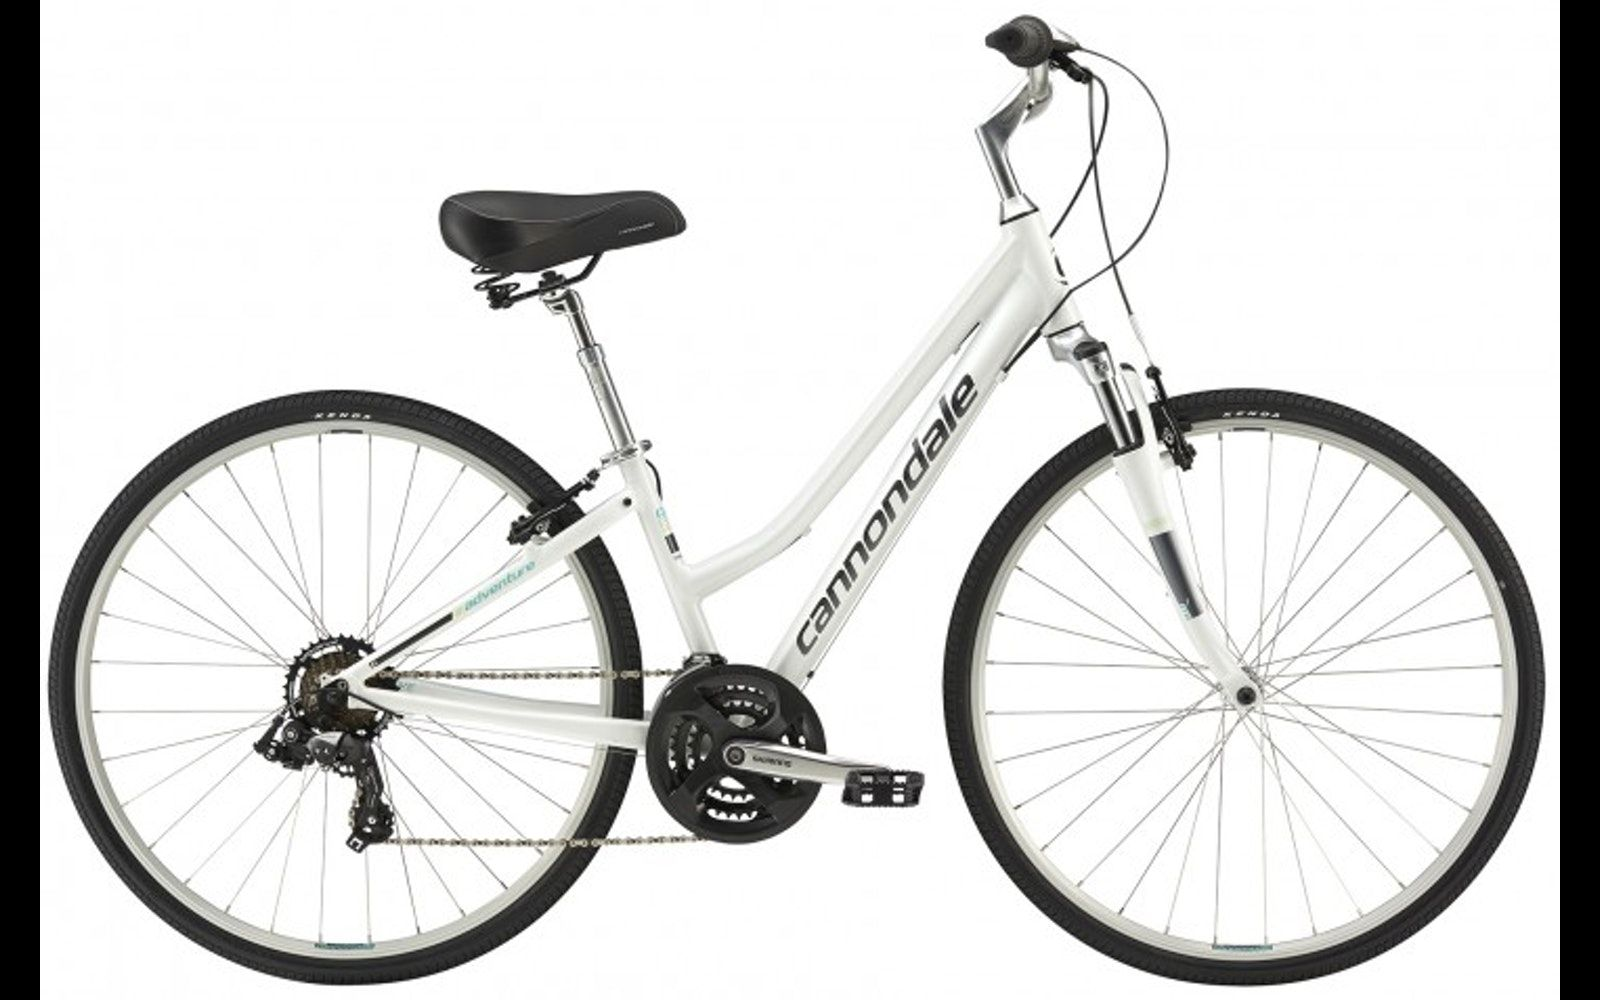 2016 Cannondale Adventure 3 Womens The Agility Of A Road Bike With An Upright Sportive Position And Versatile Tires Quick Spee Womens Bike Hybrid Bike Bike